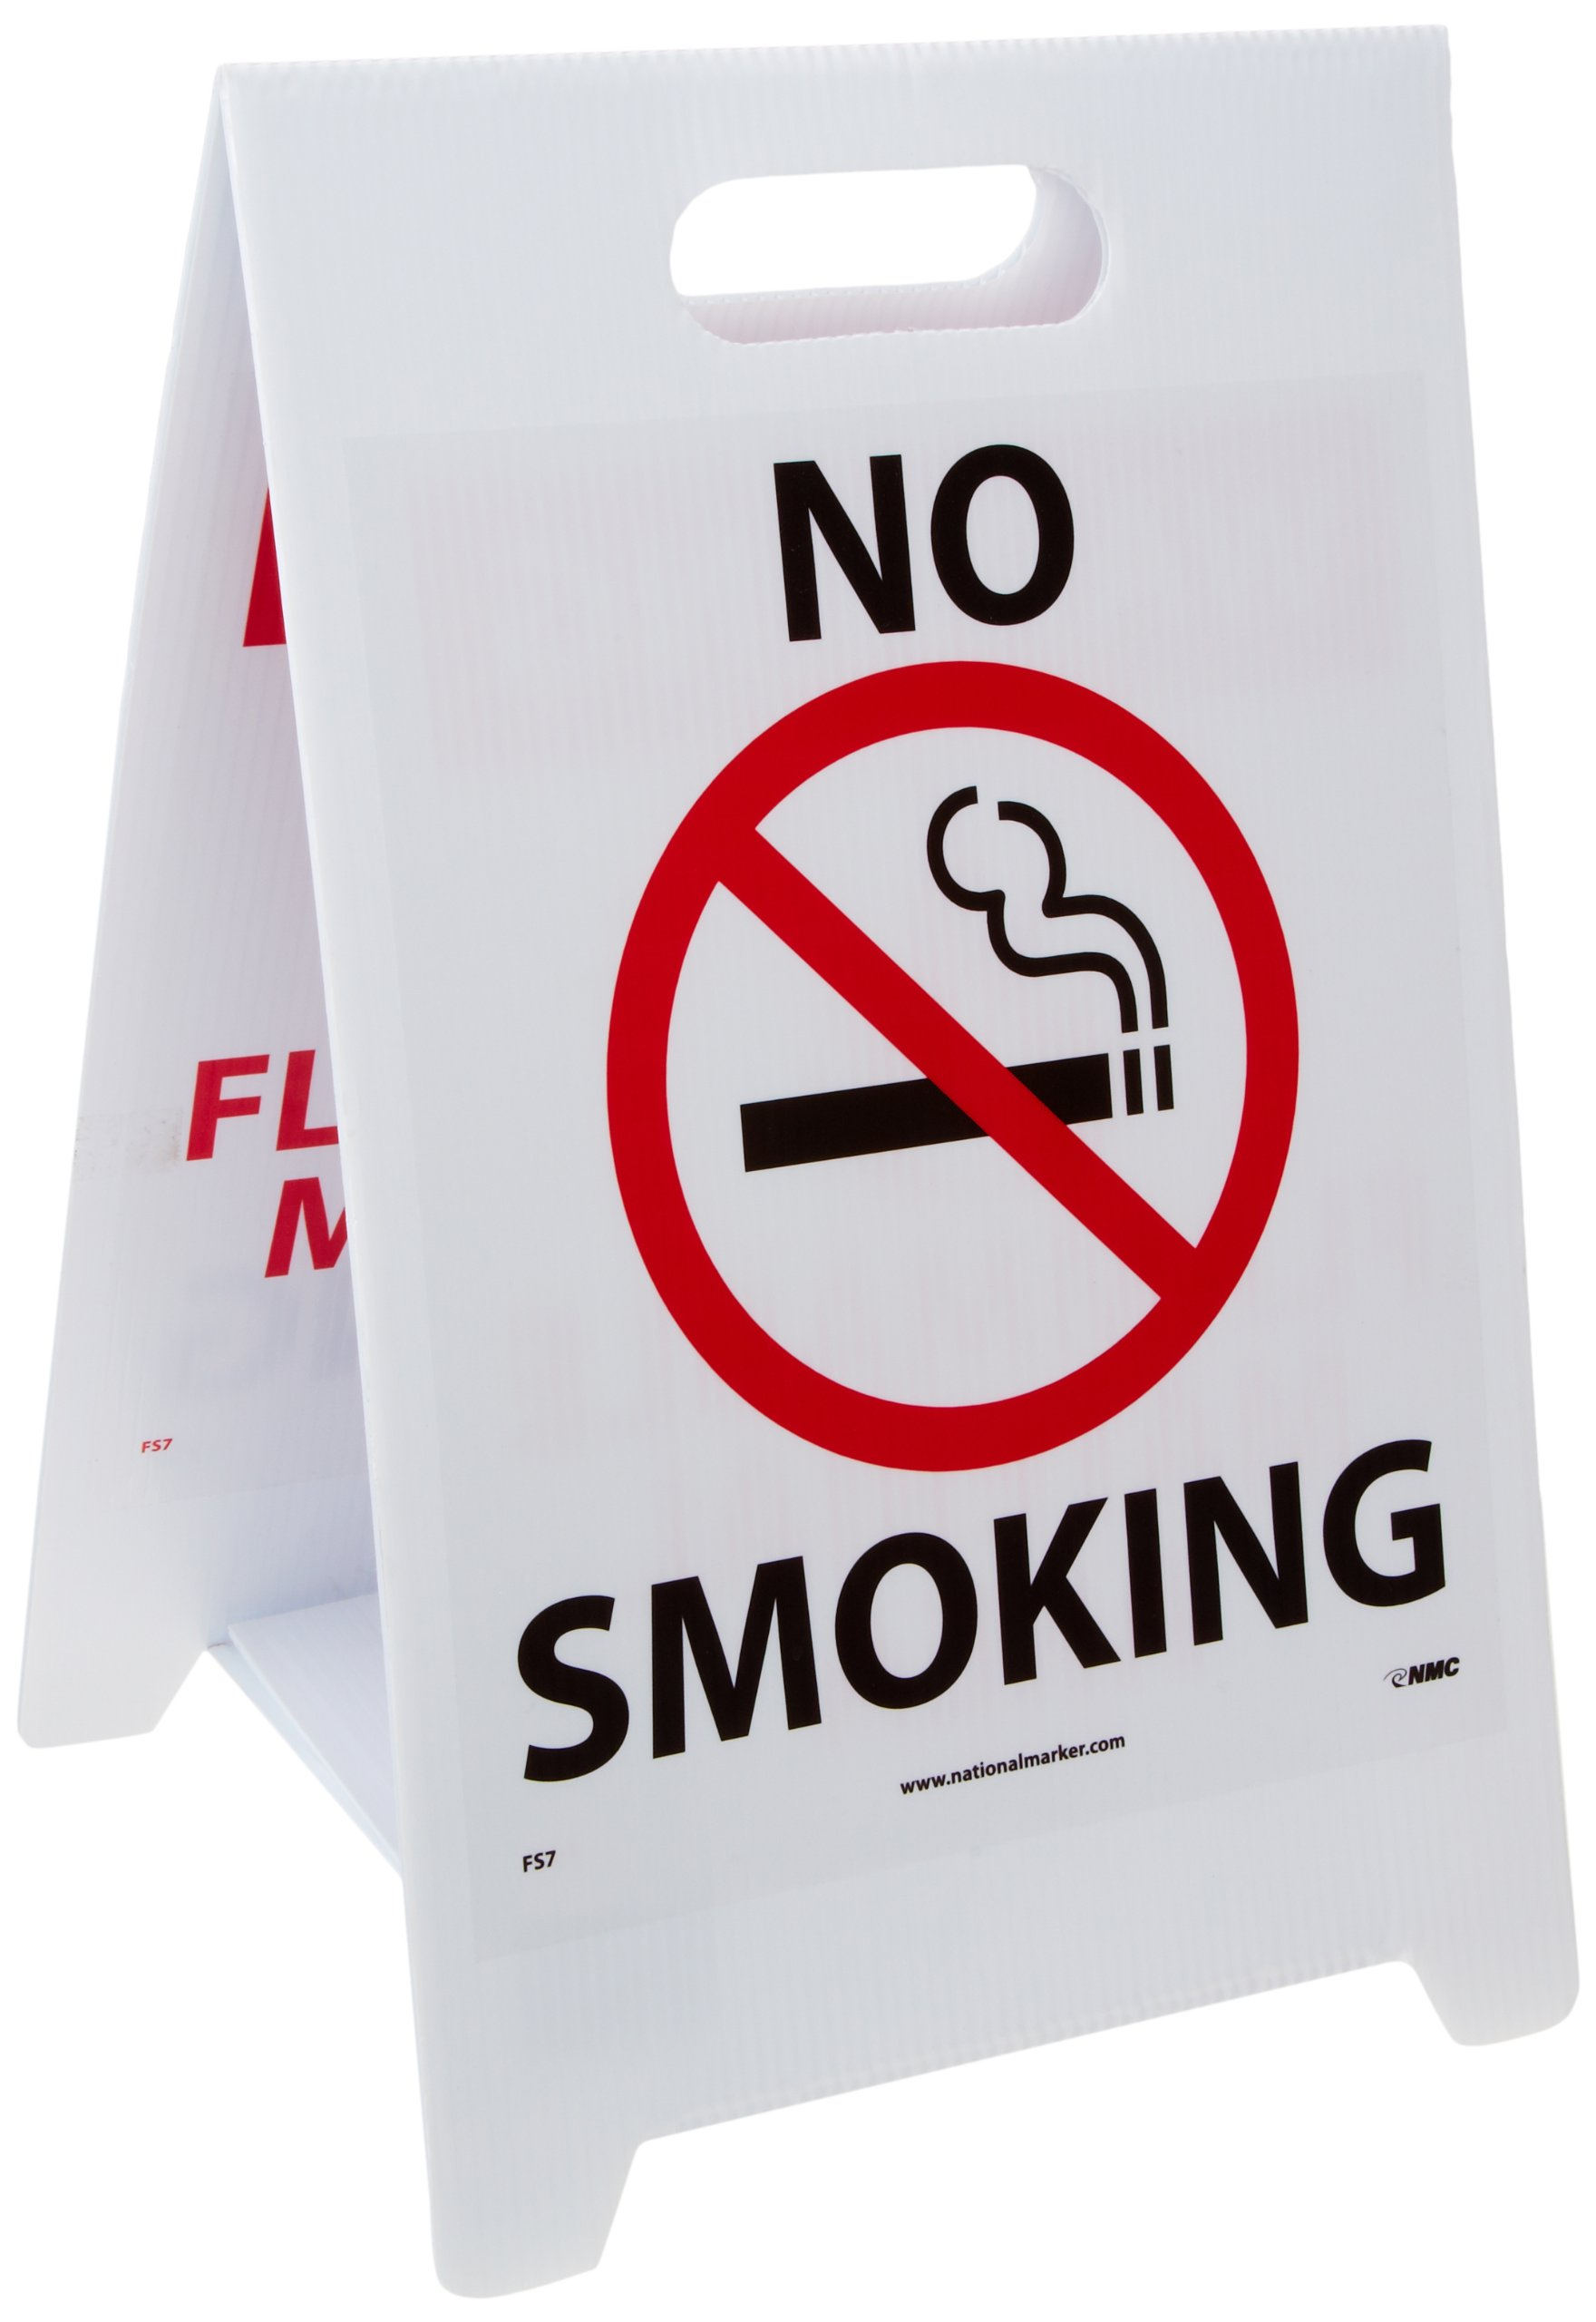 NMC FS7 Double Sided Floor Sign, Legend ''NO SMOKING WARNING FLAMMABLE MATERIAL AREA'' with Graphic, 12'' Length x 20'' Height, Coroplast, Black/Red on White